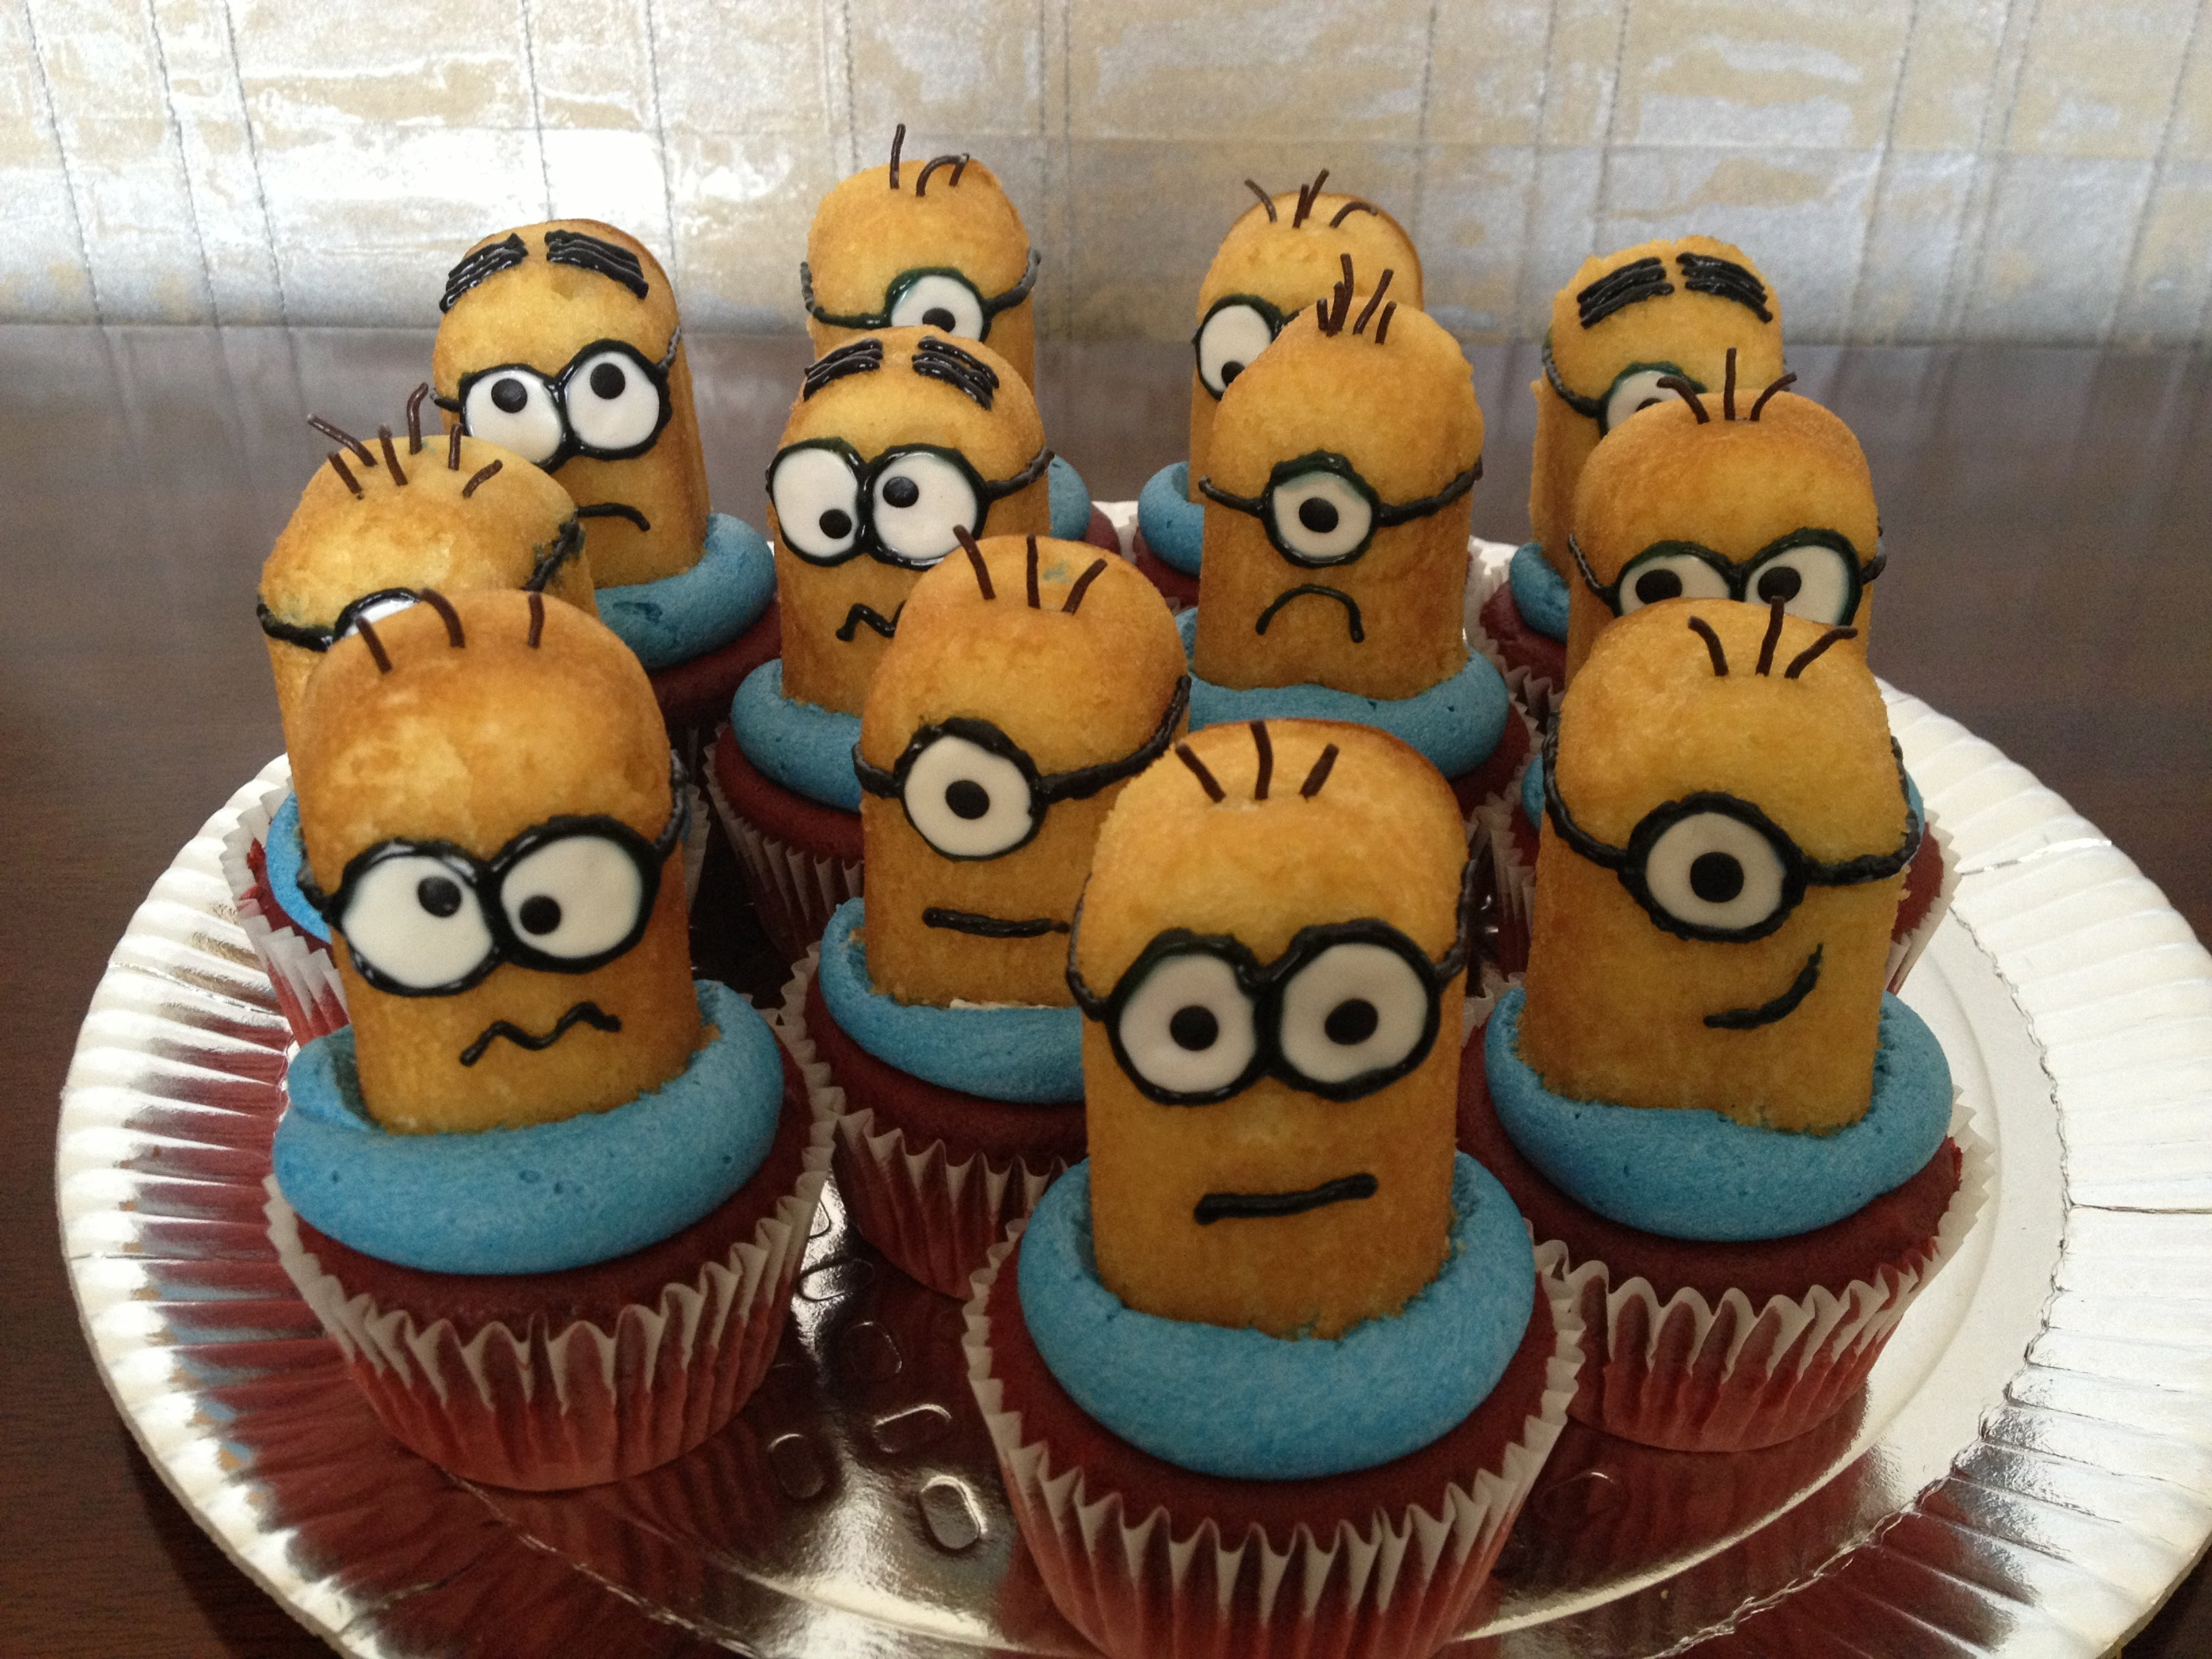 Despicable Me Minion Cake and Cupcakes